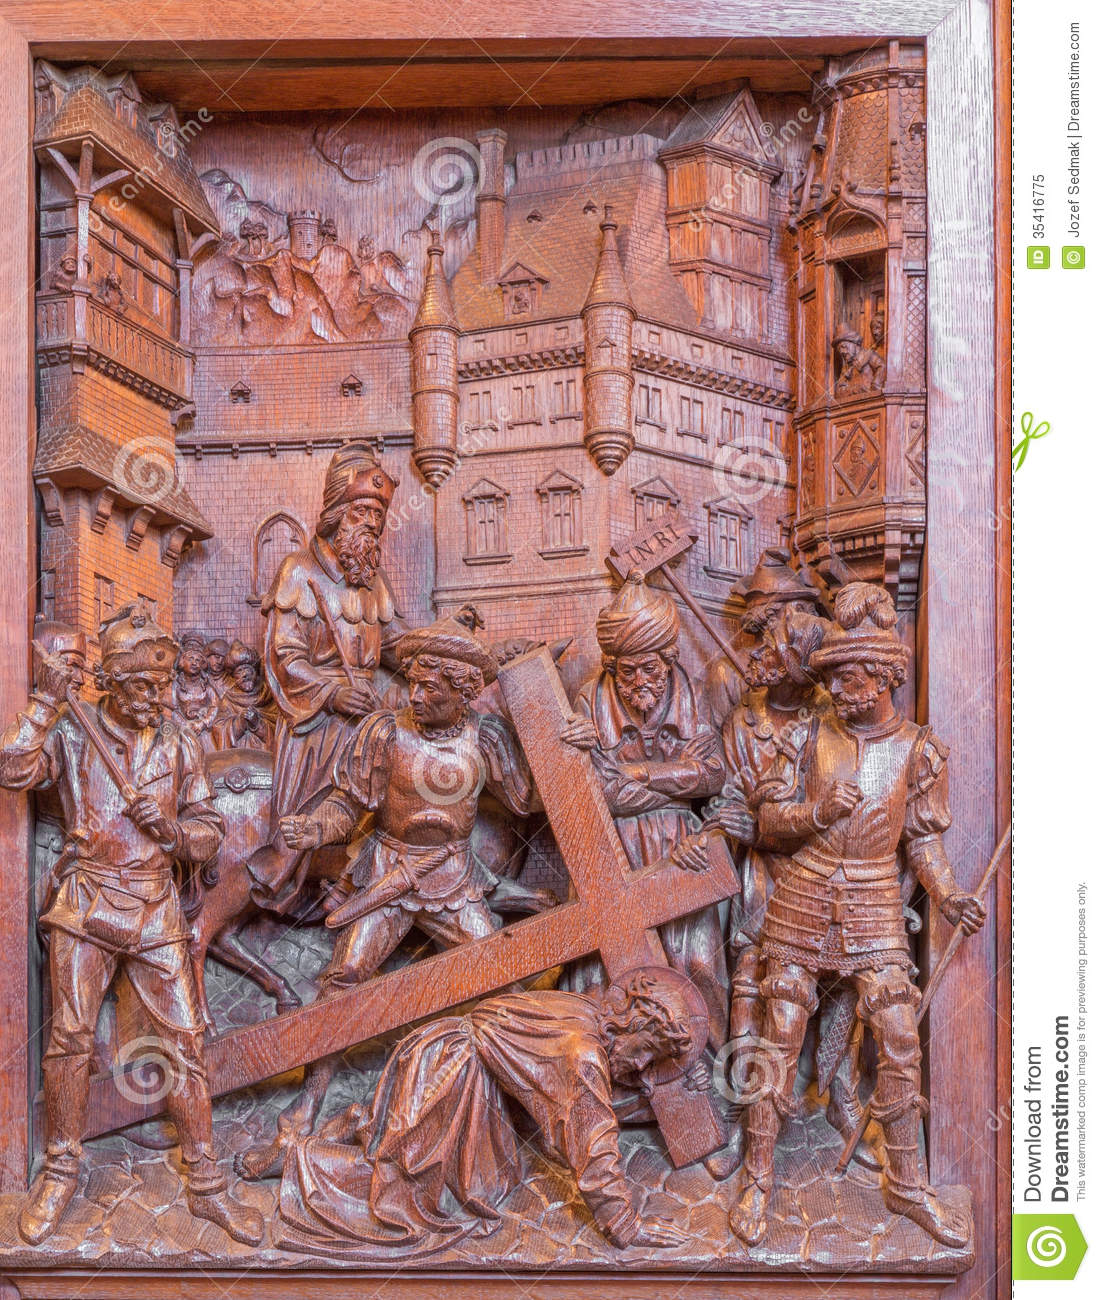 Antwerp fall of jesus under cross carved relief in st